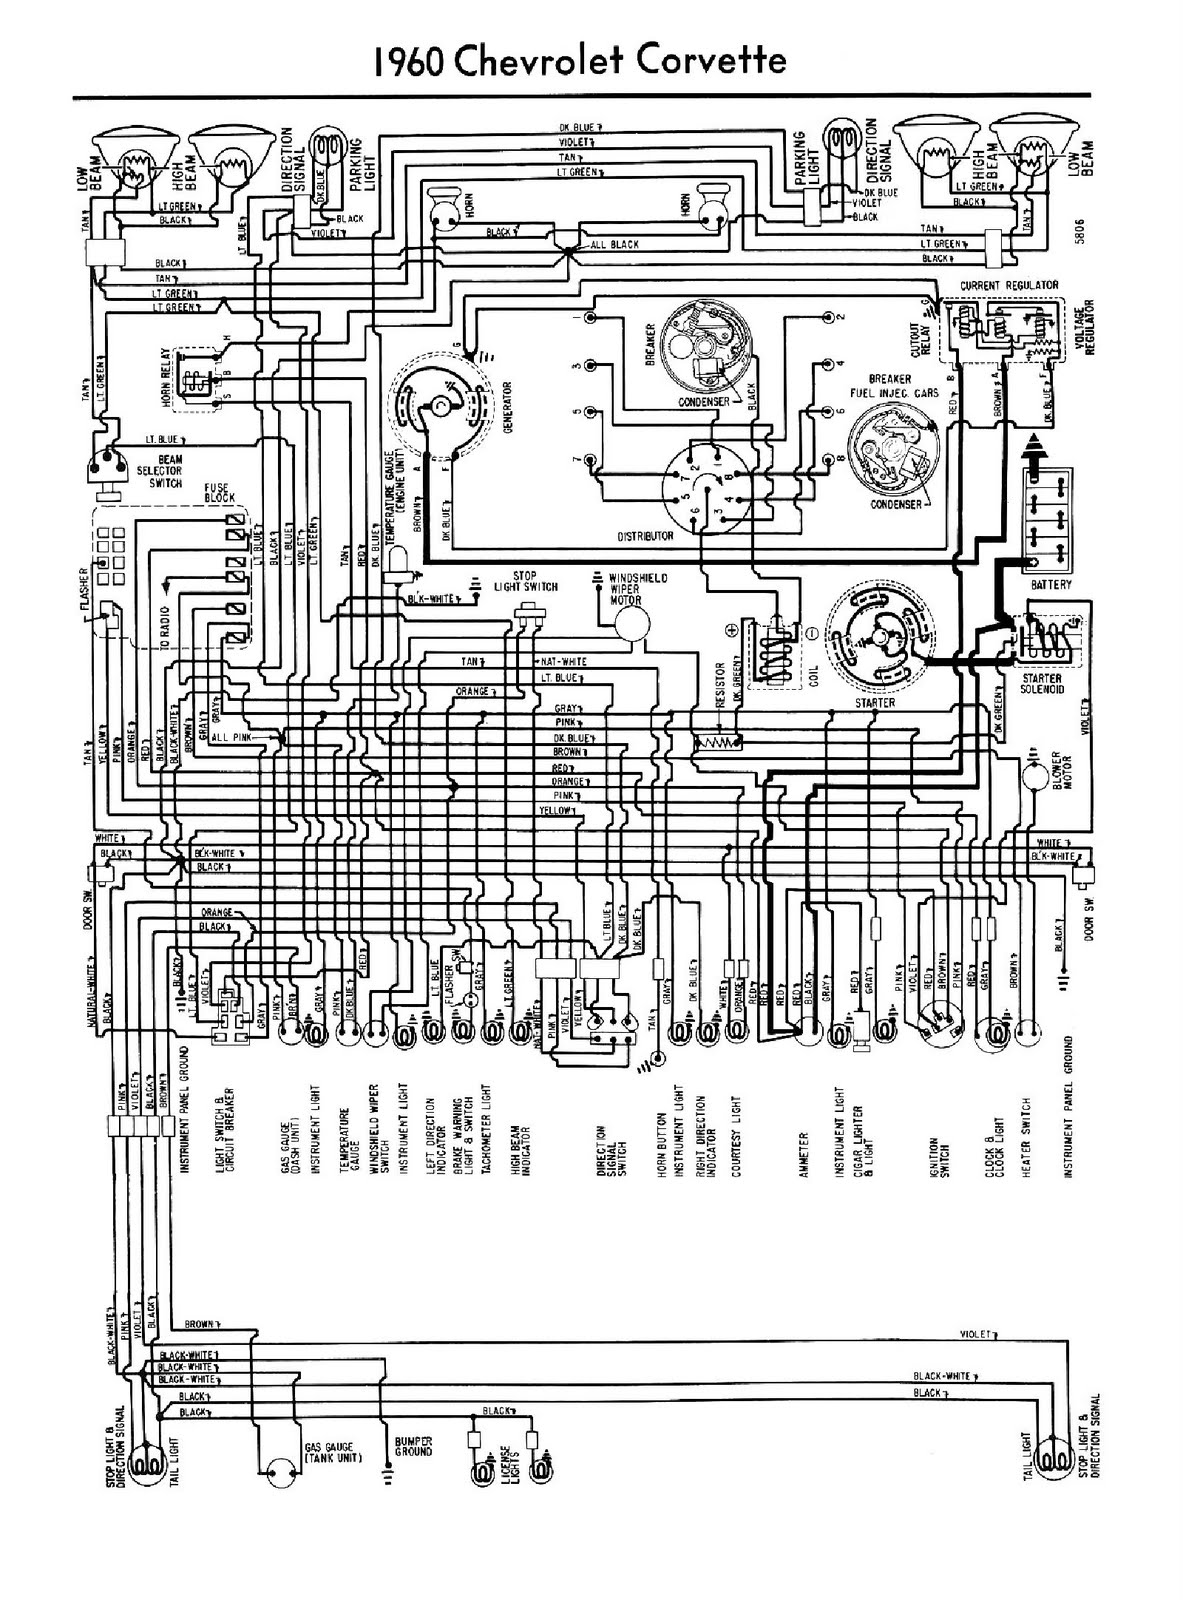 chevrolet corvette wiring diagram free picture wiring diagram rh agarwalexports co 1969 Corvette Dash Wiring Corvette V8 Engine Wiring 1976 1977 1975